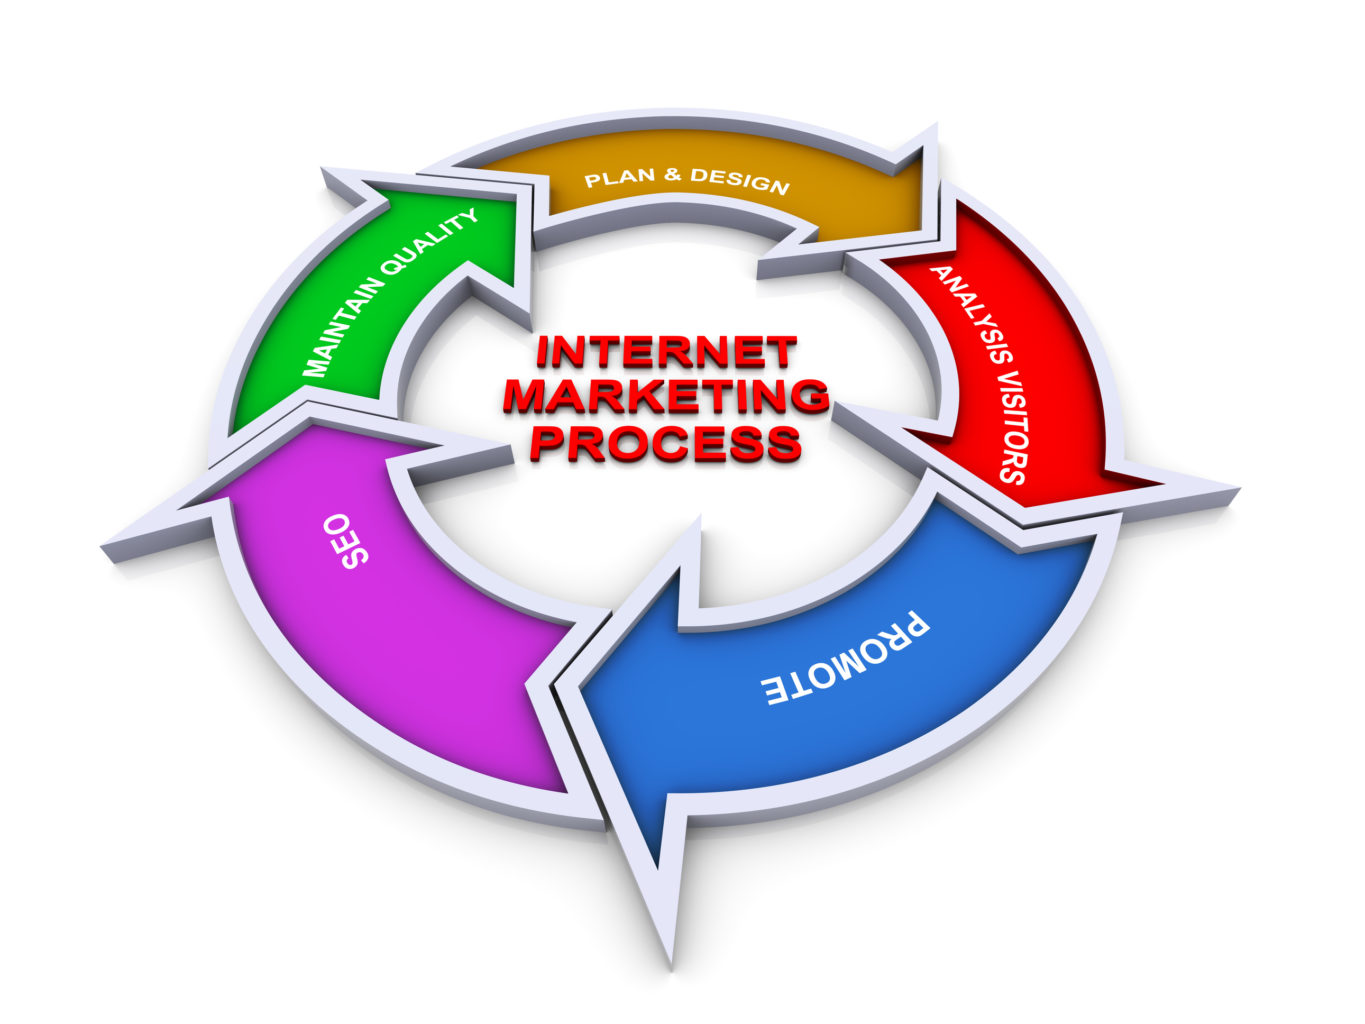 Process-to-Learn-Internet-Marketing.jpg